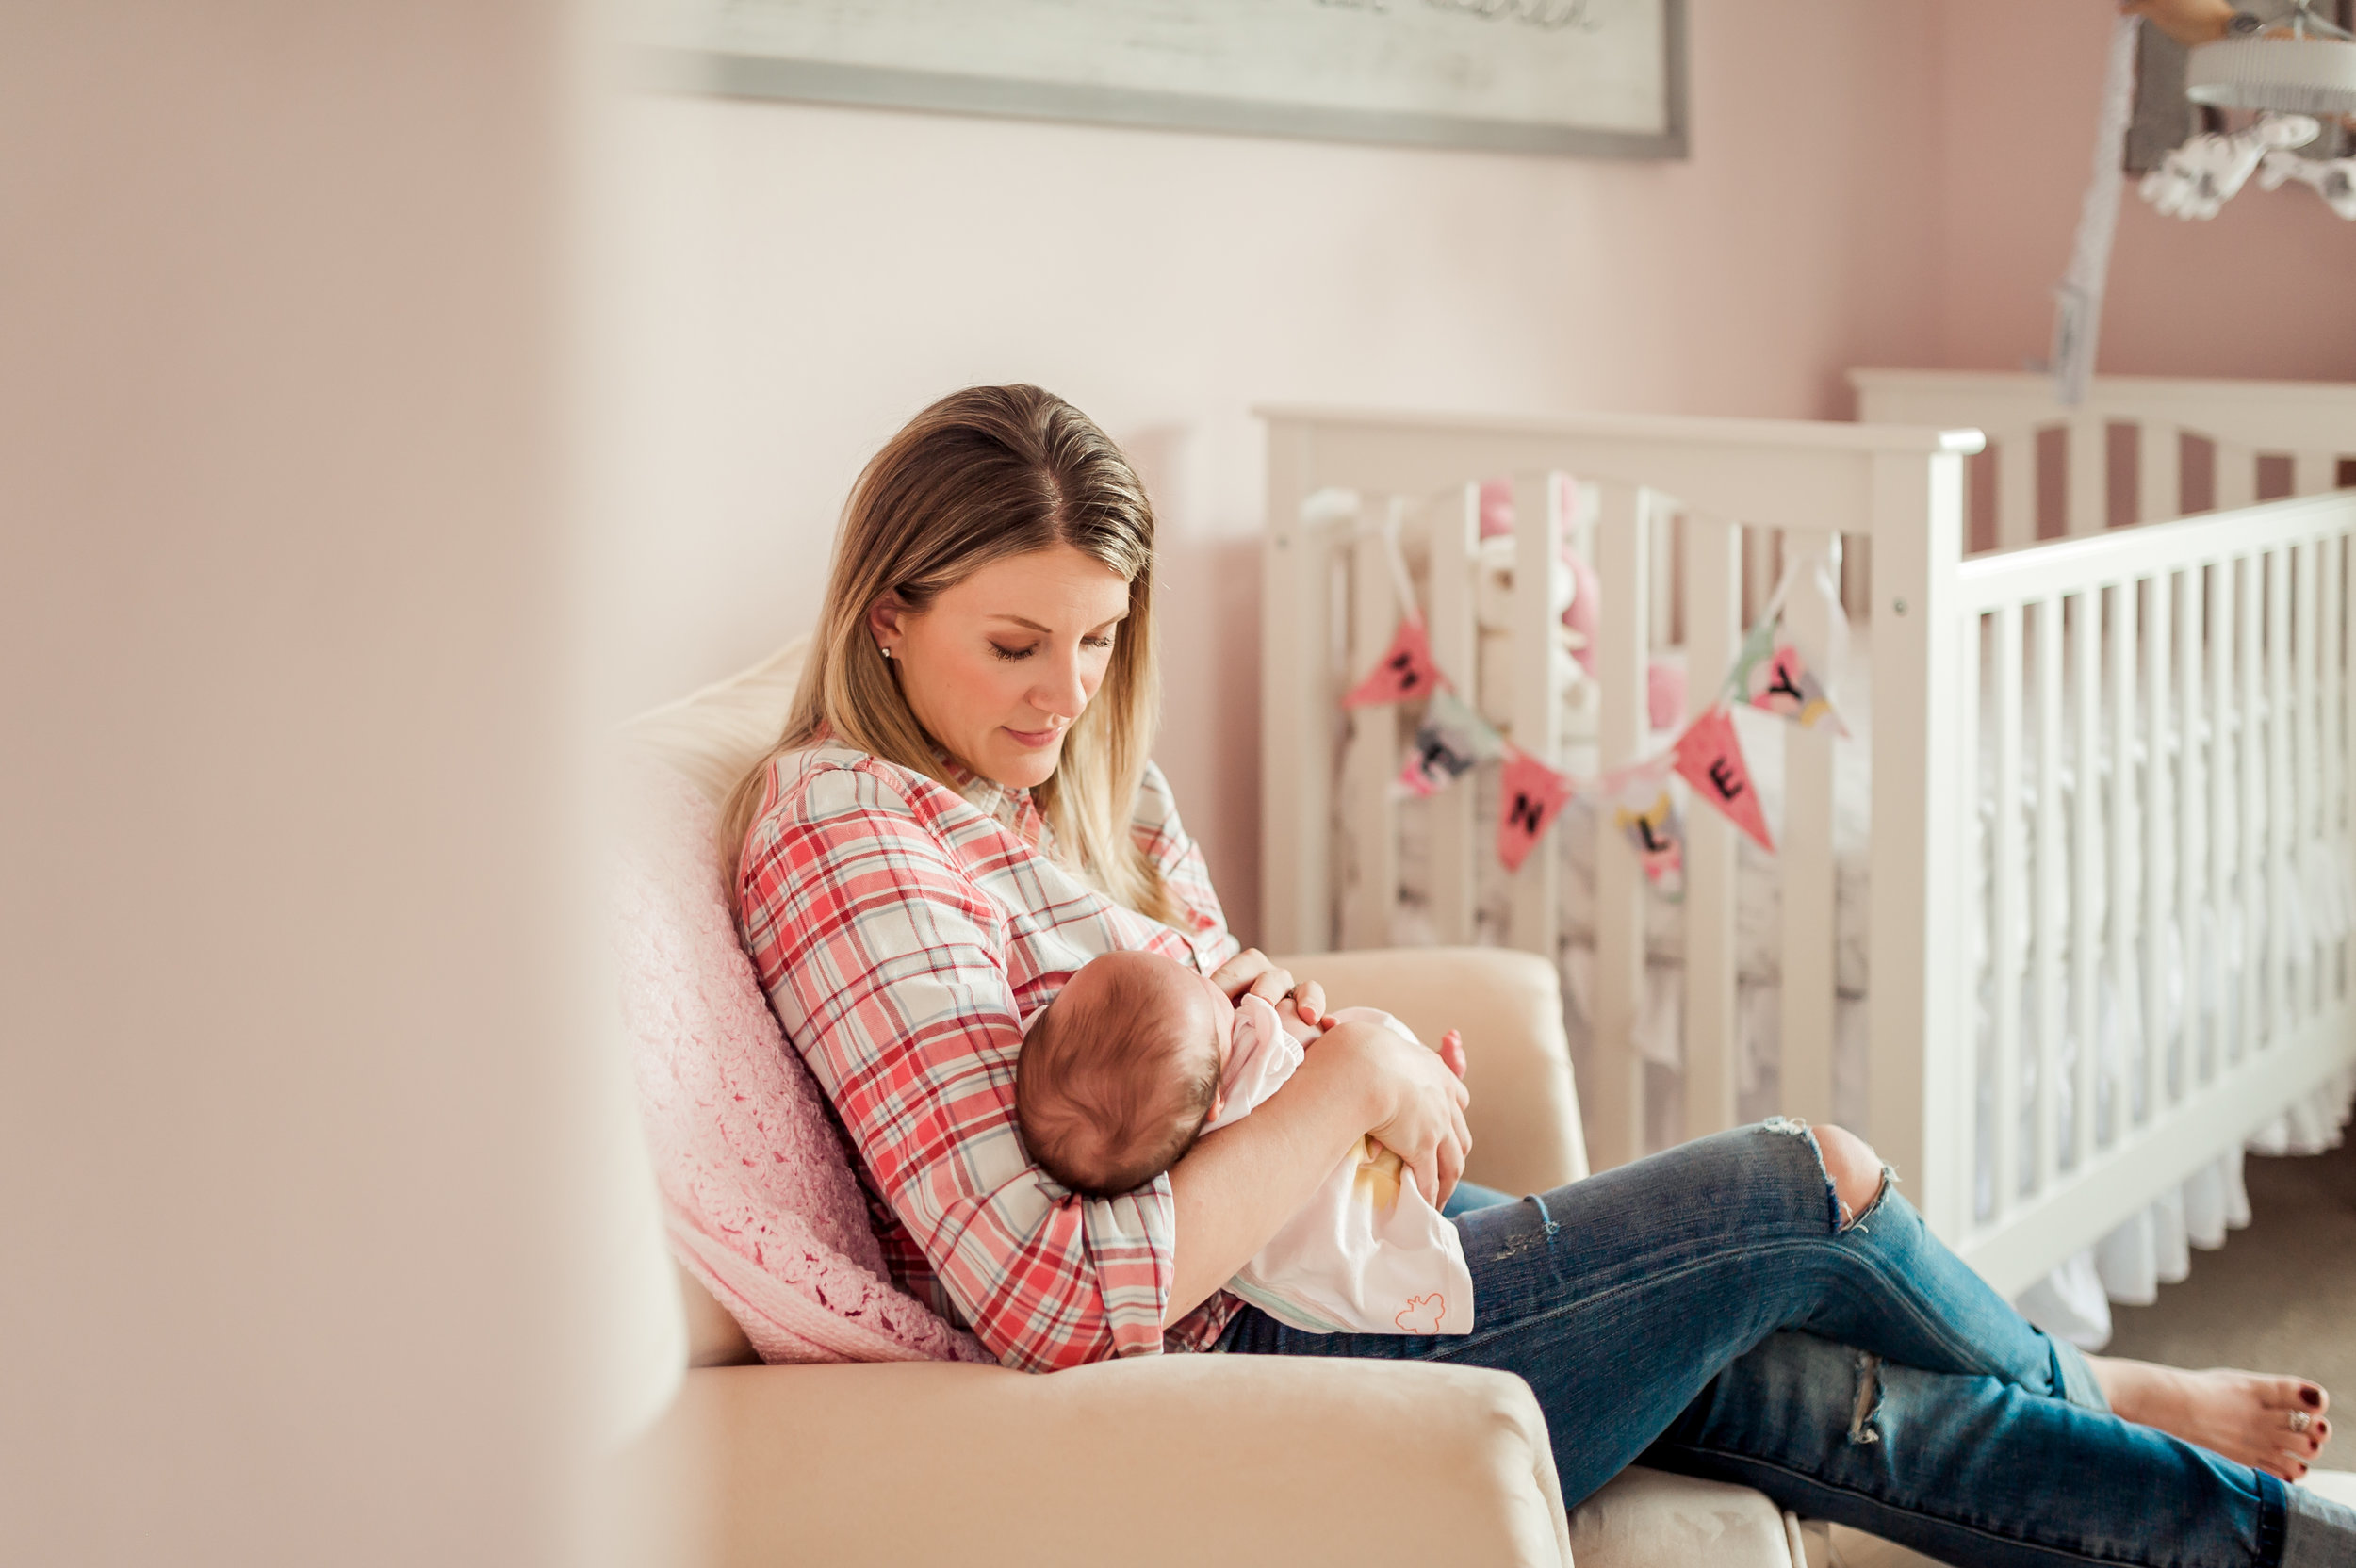 Newborn photographer, Dear Marlowe Photography, captures a mother rocking her baby girl in a beautiful pink and white nursery.